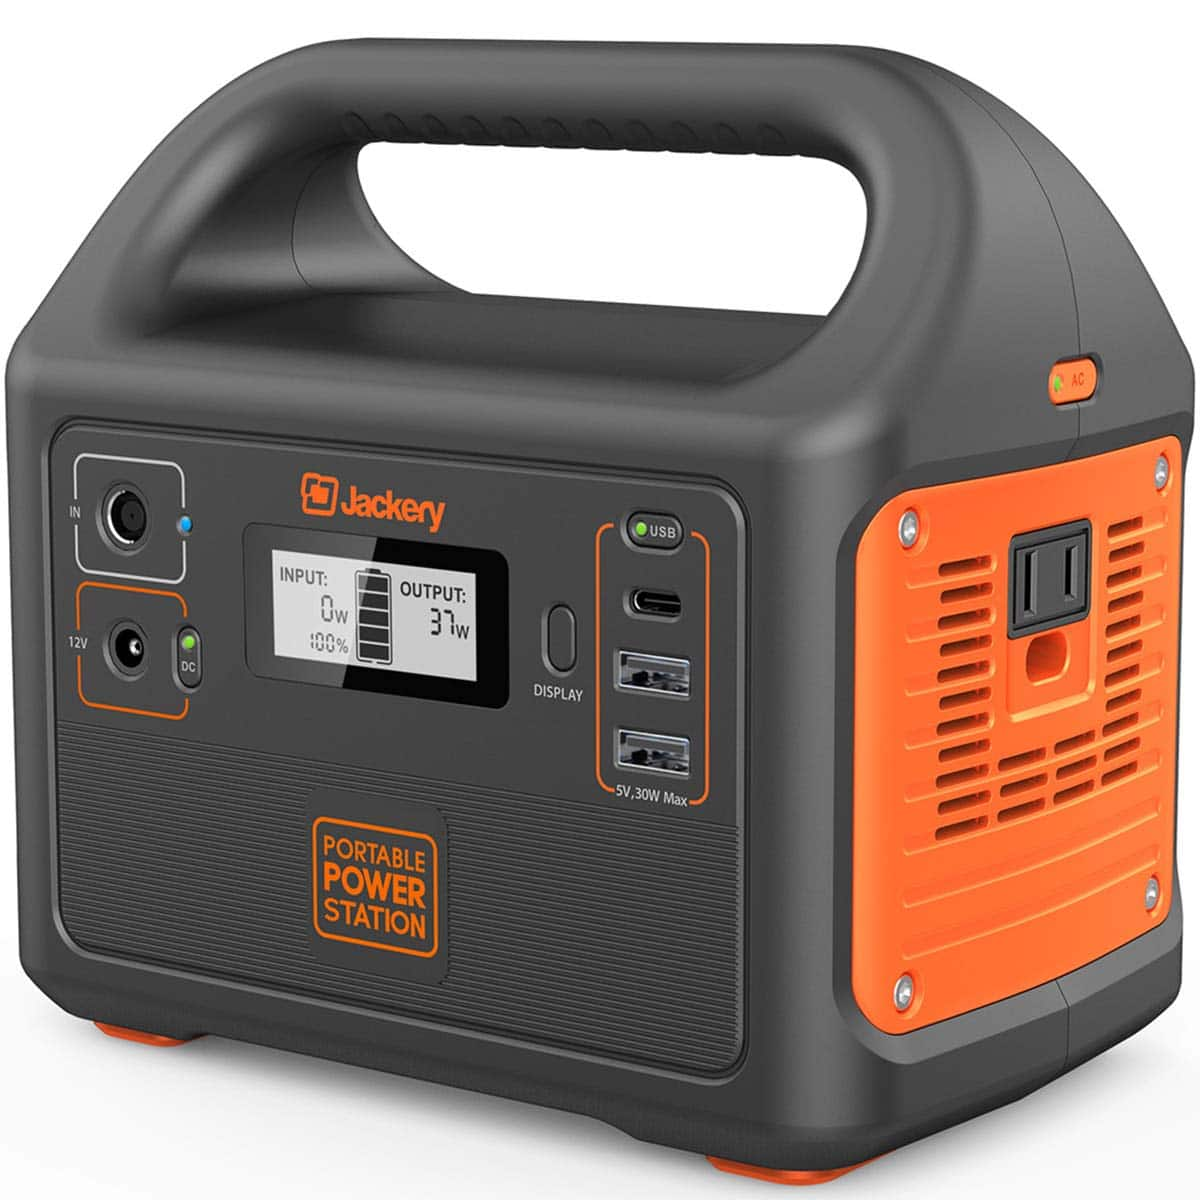 Jackery Portable Power Station Explorer 160 - $109.99 Amazon Lightning Deal - Back Up Power Supply, A/C Outlet, USB C and USB and D/C LOWEST PRICE EVER